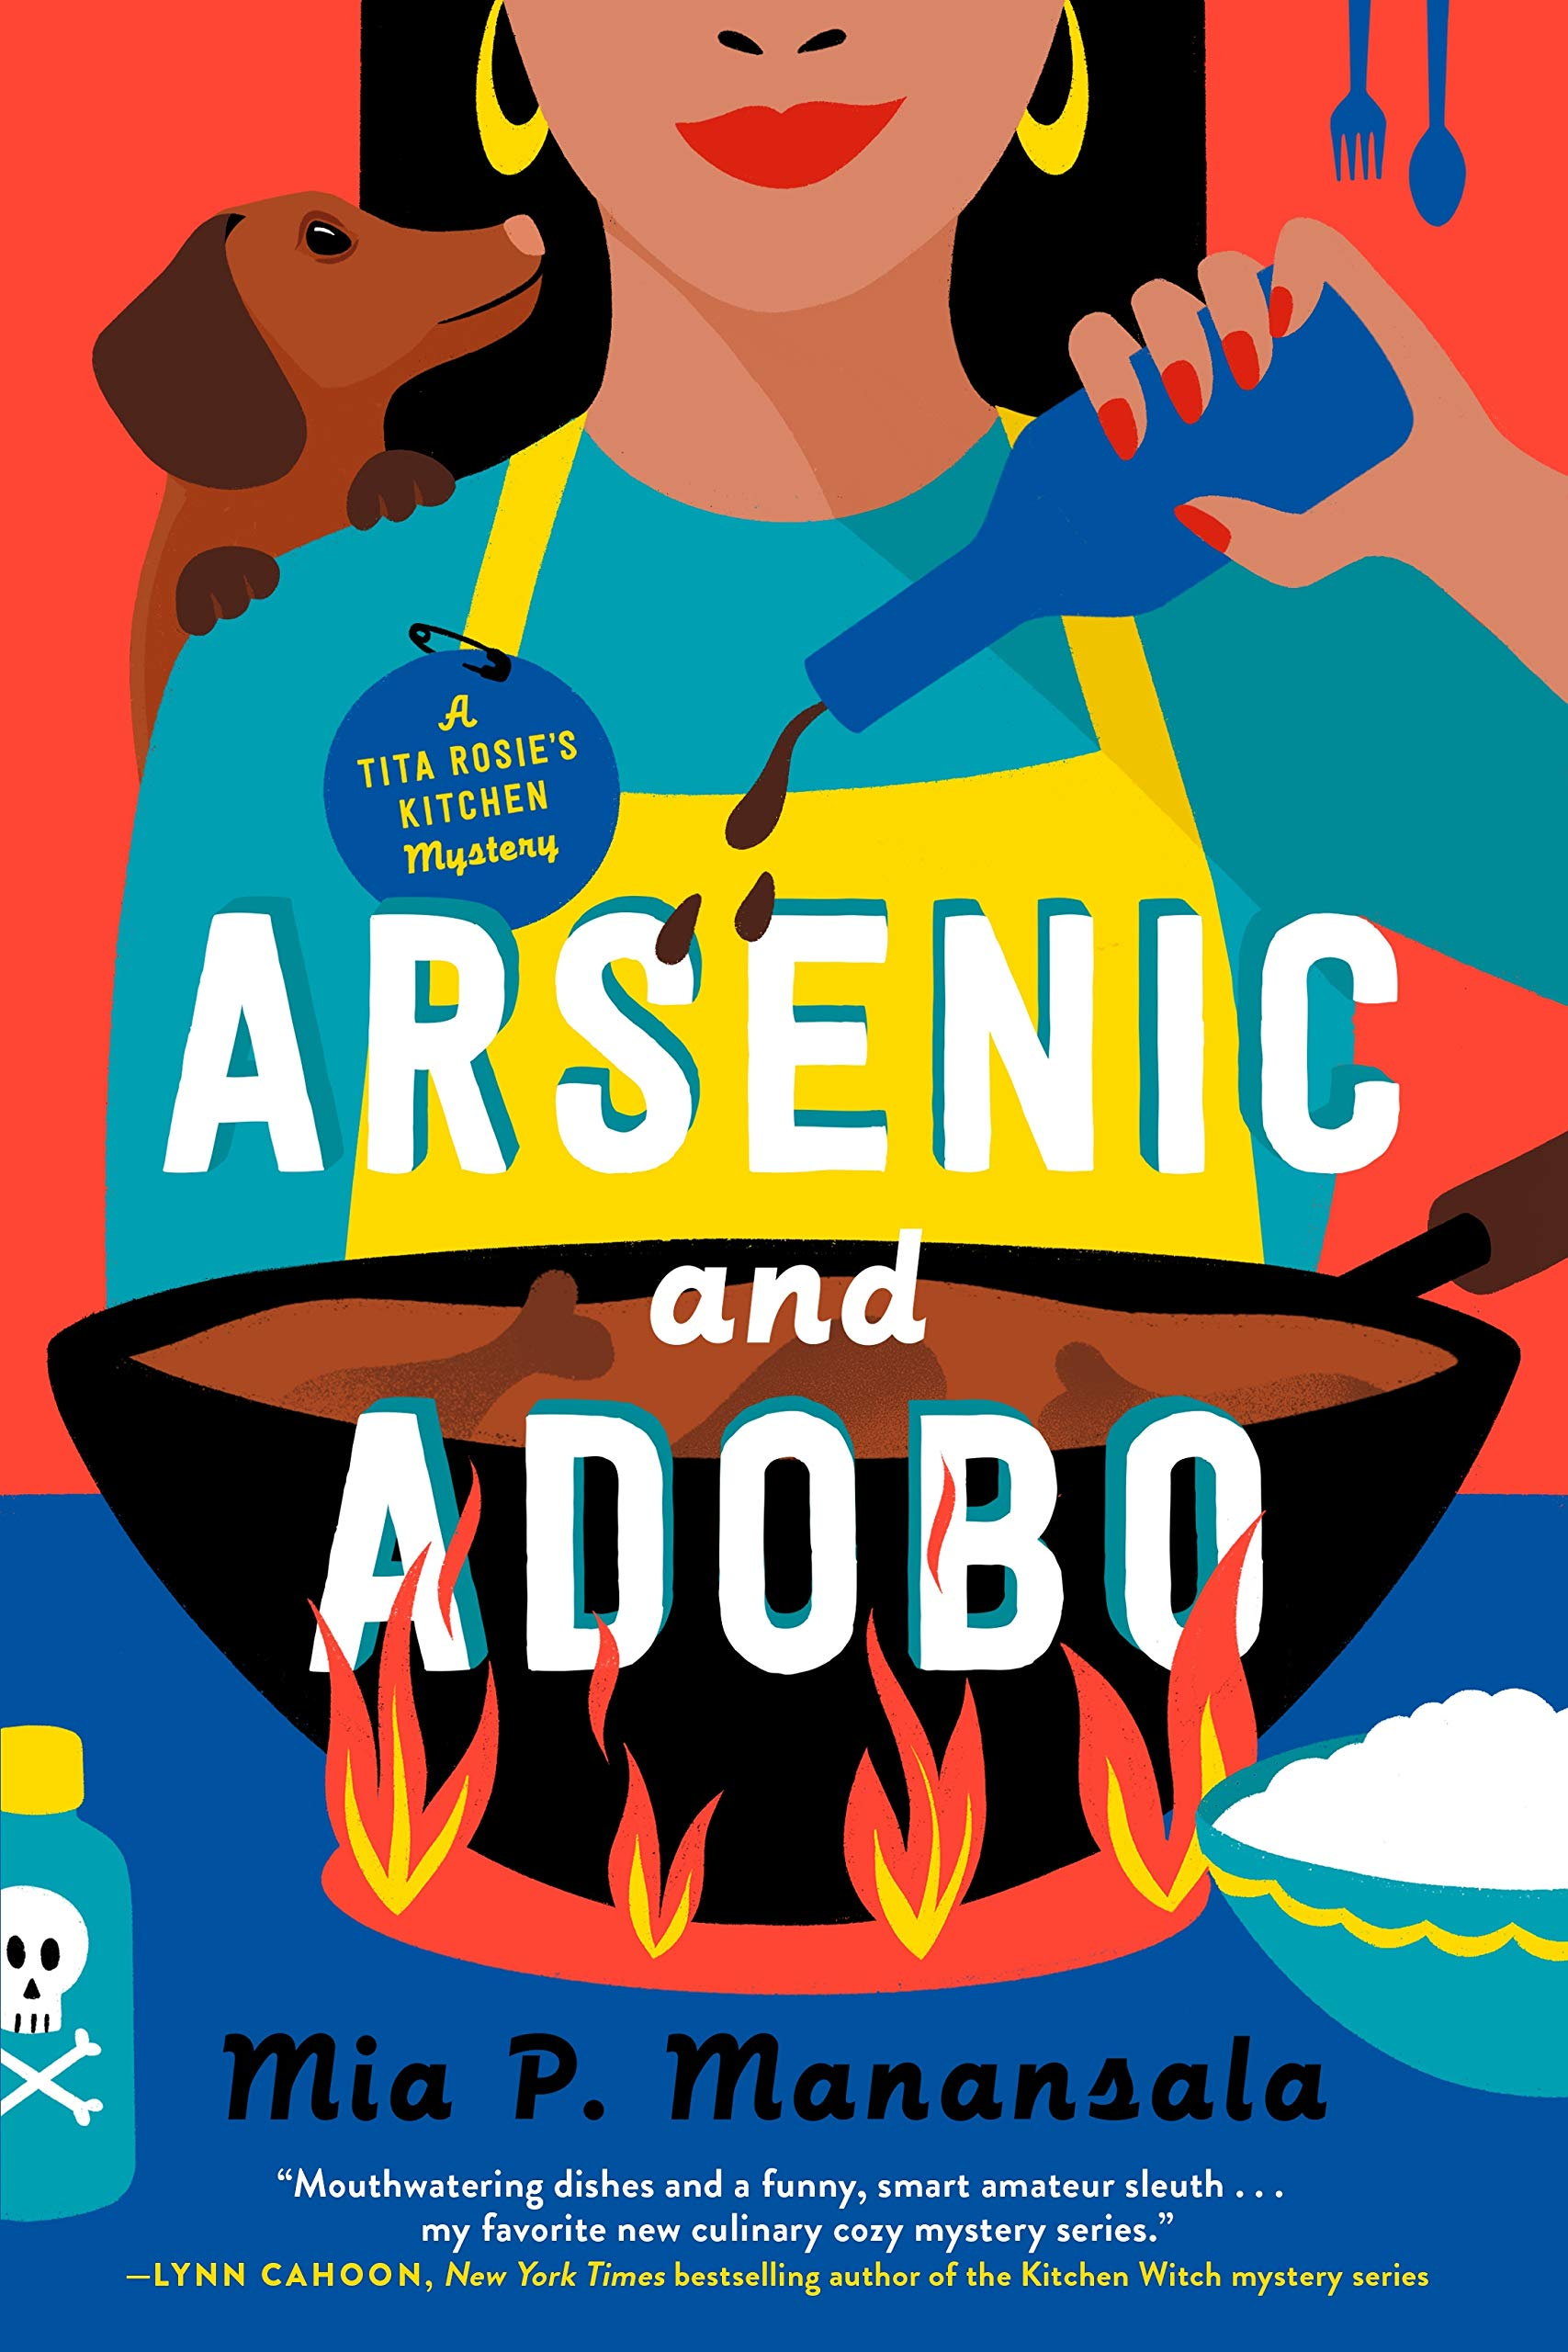 Amazon.com: Arsenic and Adobo (A Tita Rosie's Kitchen Mystery)  (9780593201671): Manansala, Mia P.: Books